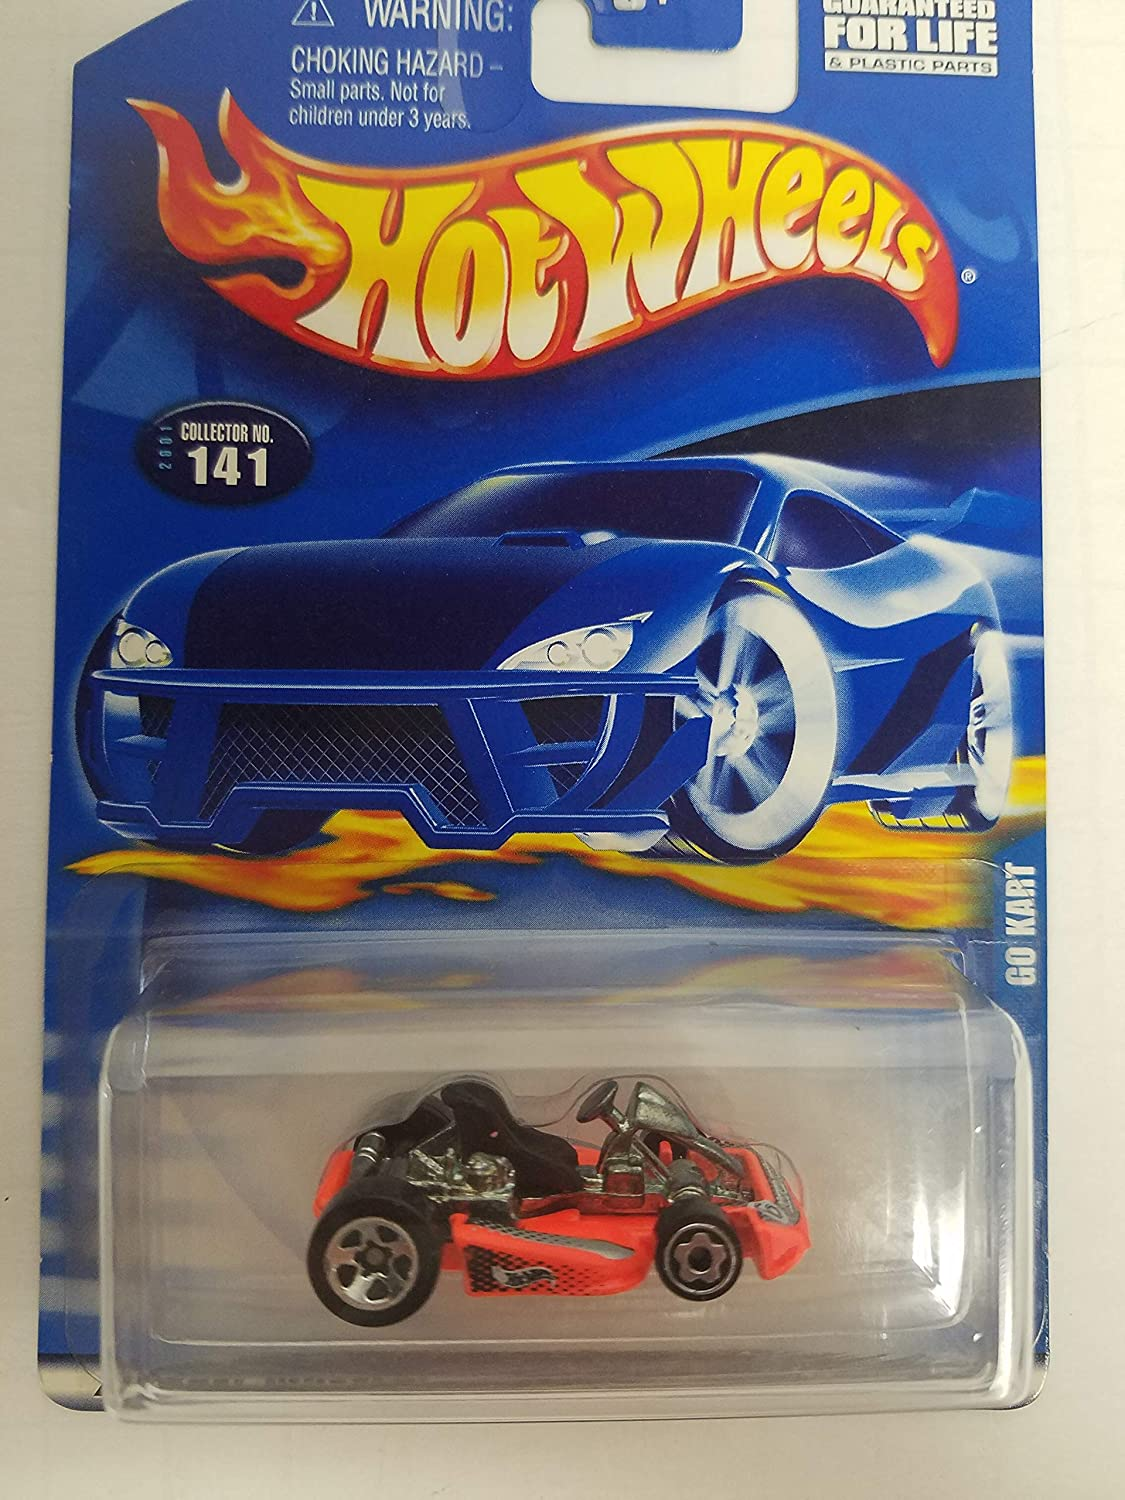 Go Cart Hot Wheels 2001 diecast 1/64 scale car No. 141